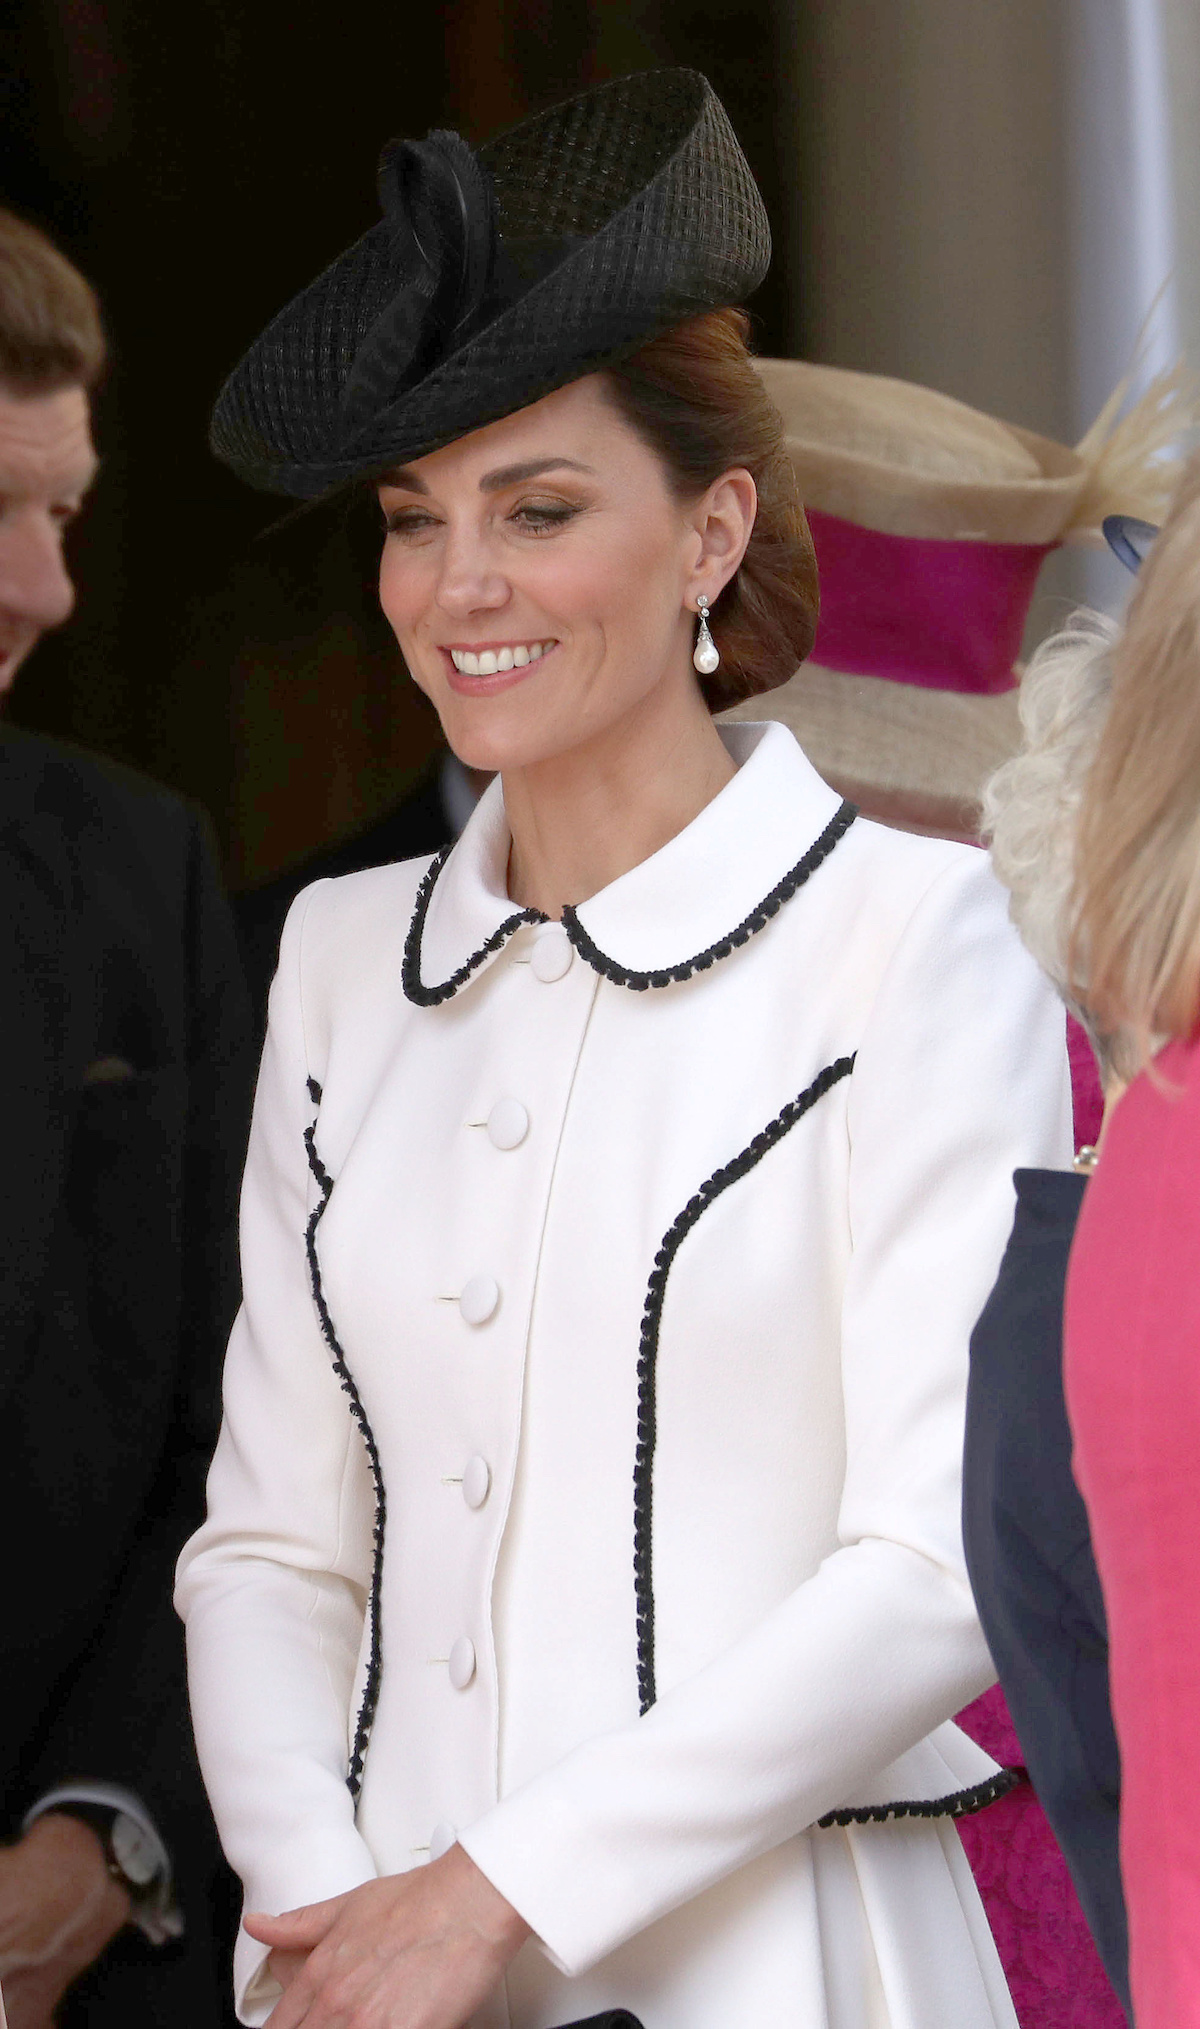 Britain's Catherine, Duchess of Cambridge, watches the Order of the Garter Service at St Georges's Chapel at Windsor Castle, Britain June 17, 2019. Steve Parsons/Pool via REUTERS